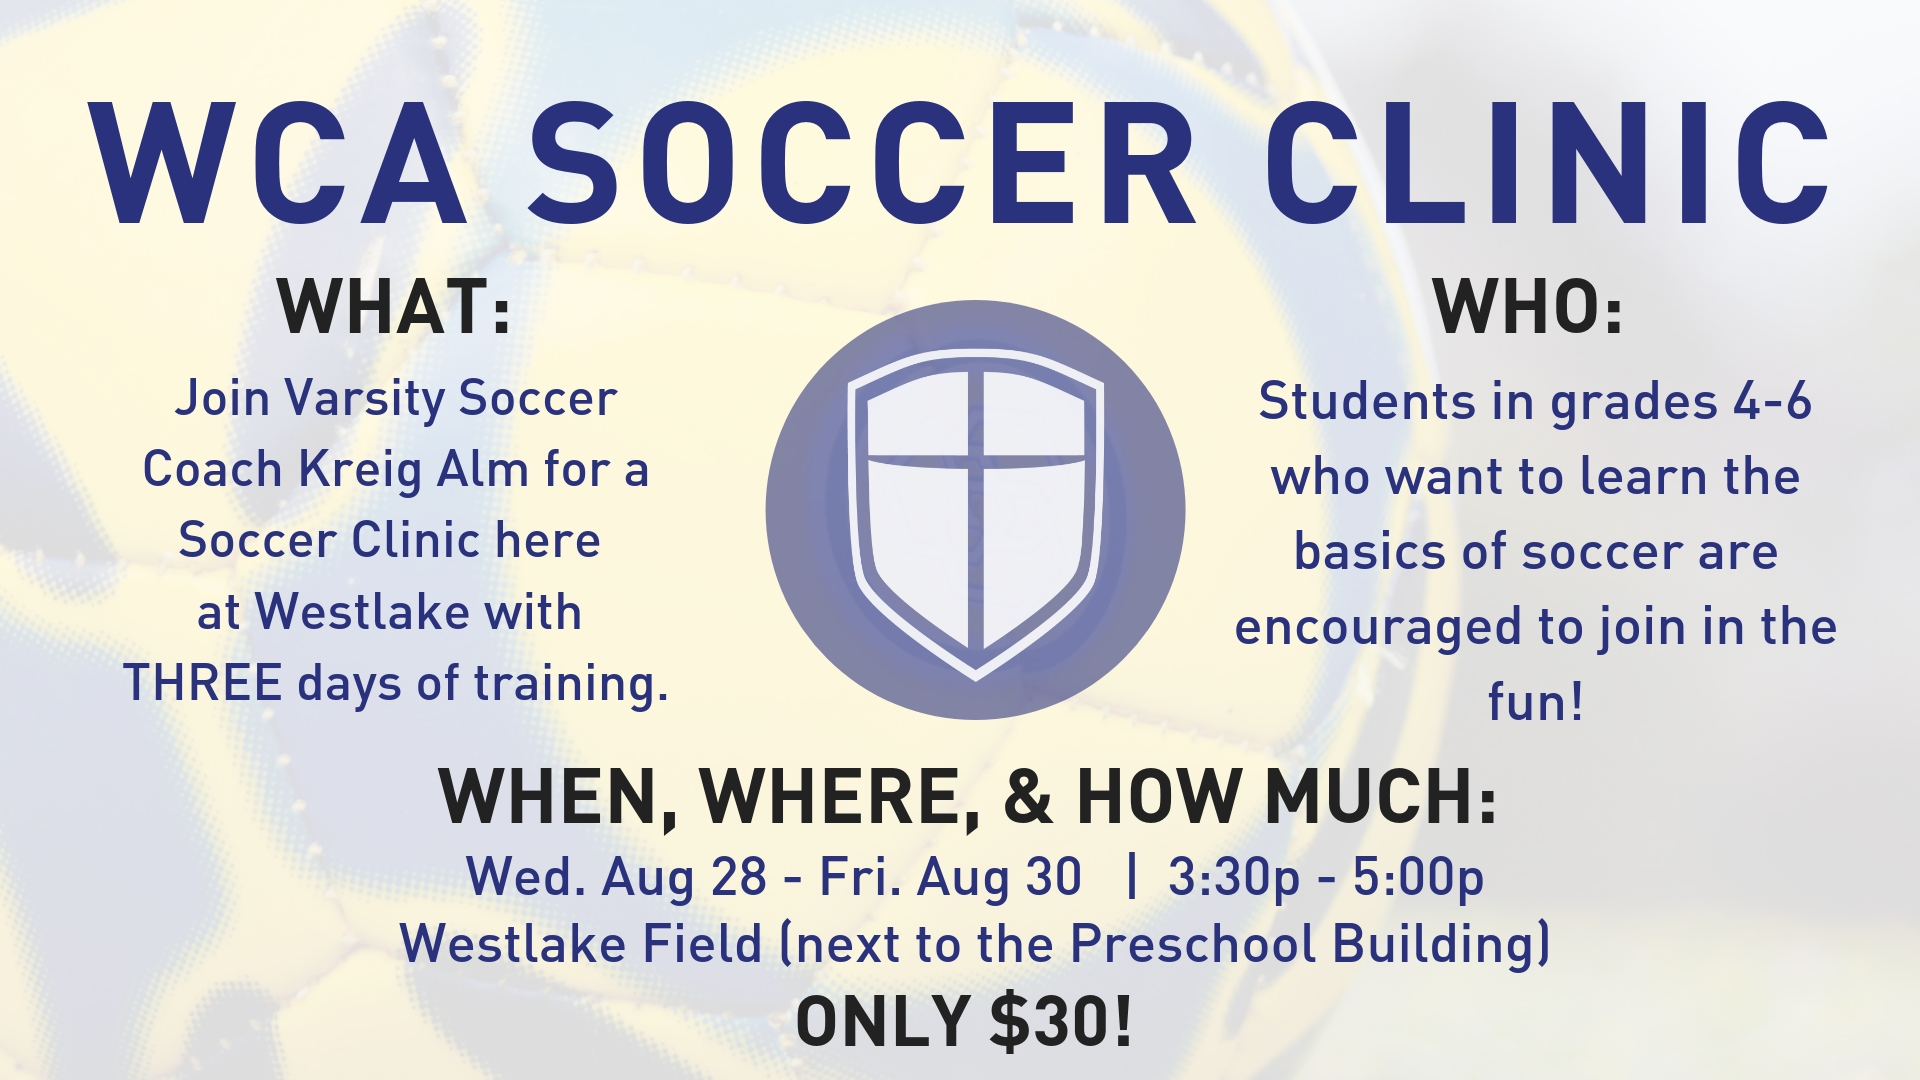 Elementary Soccer Clinic  |  Available for students in grades 4-6